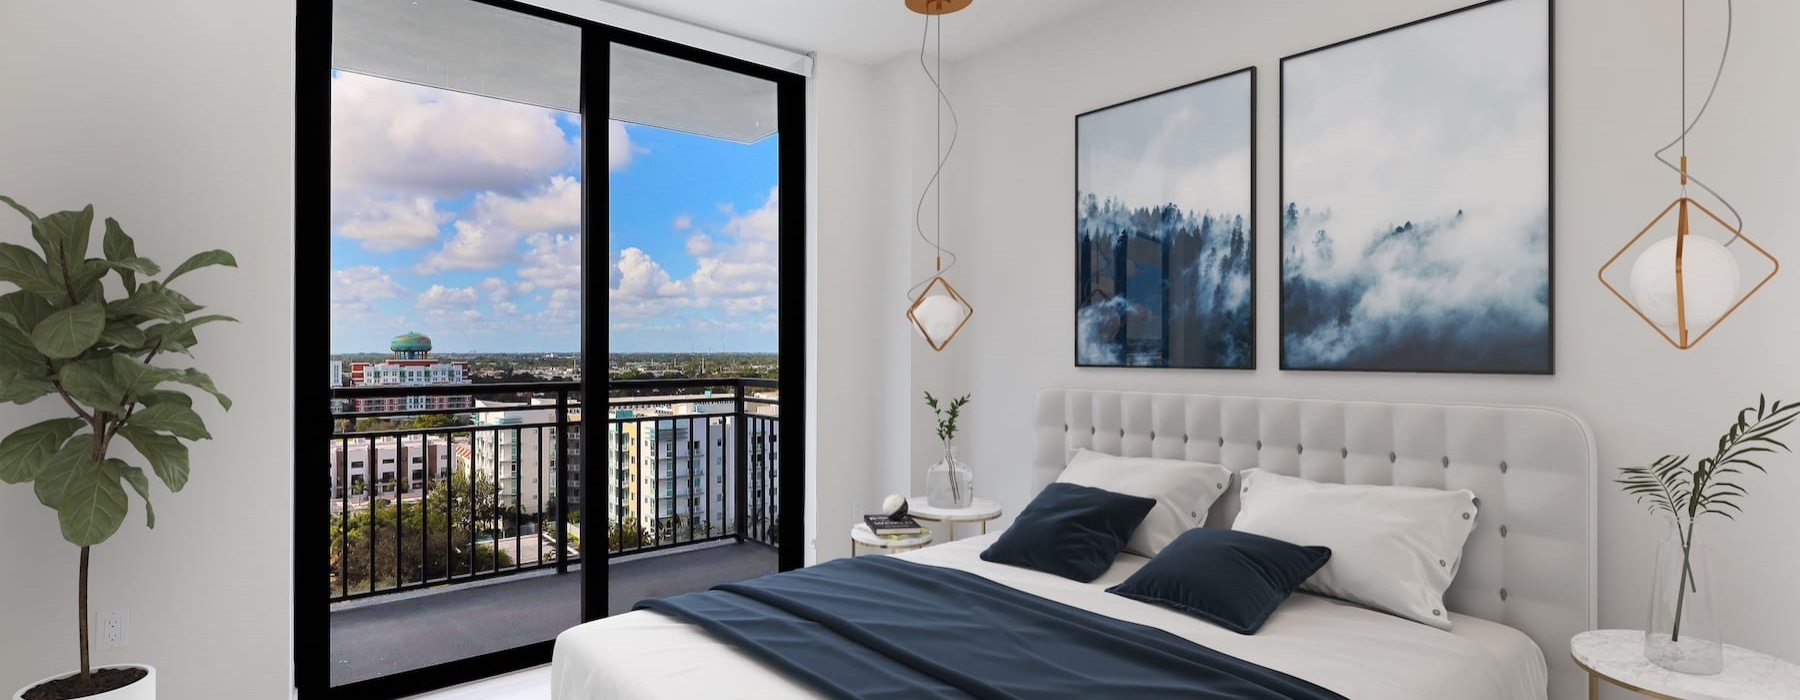 rendering of bedroom with large windows and open spaces